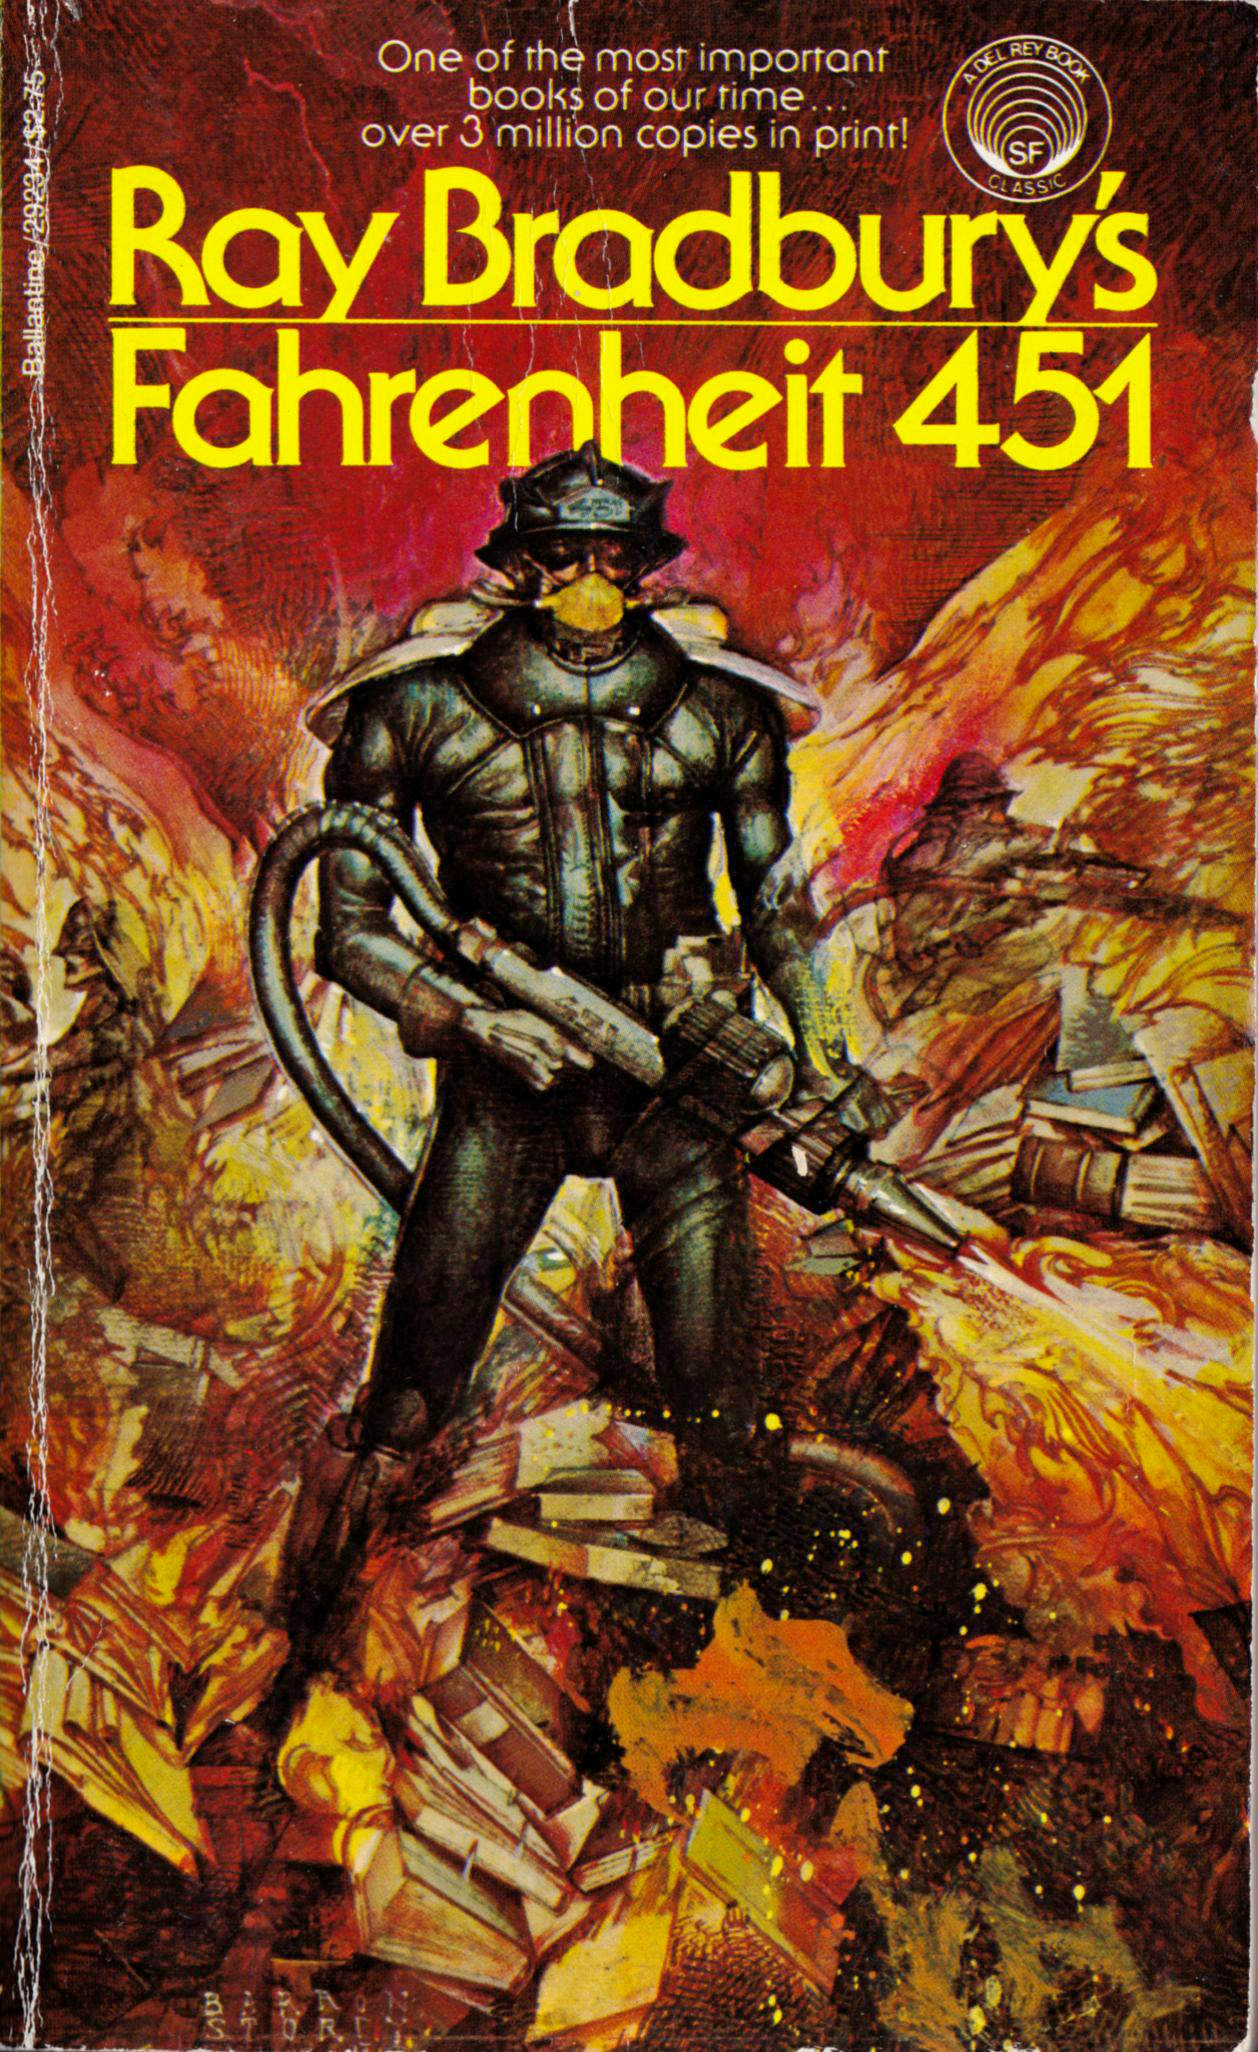 darwinian thoughts on ray bradbury s fahrenheit welcome to darwinian thoughts on ray bradbury s fahrenheit 451